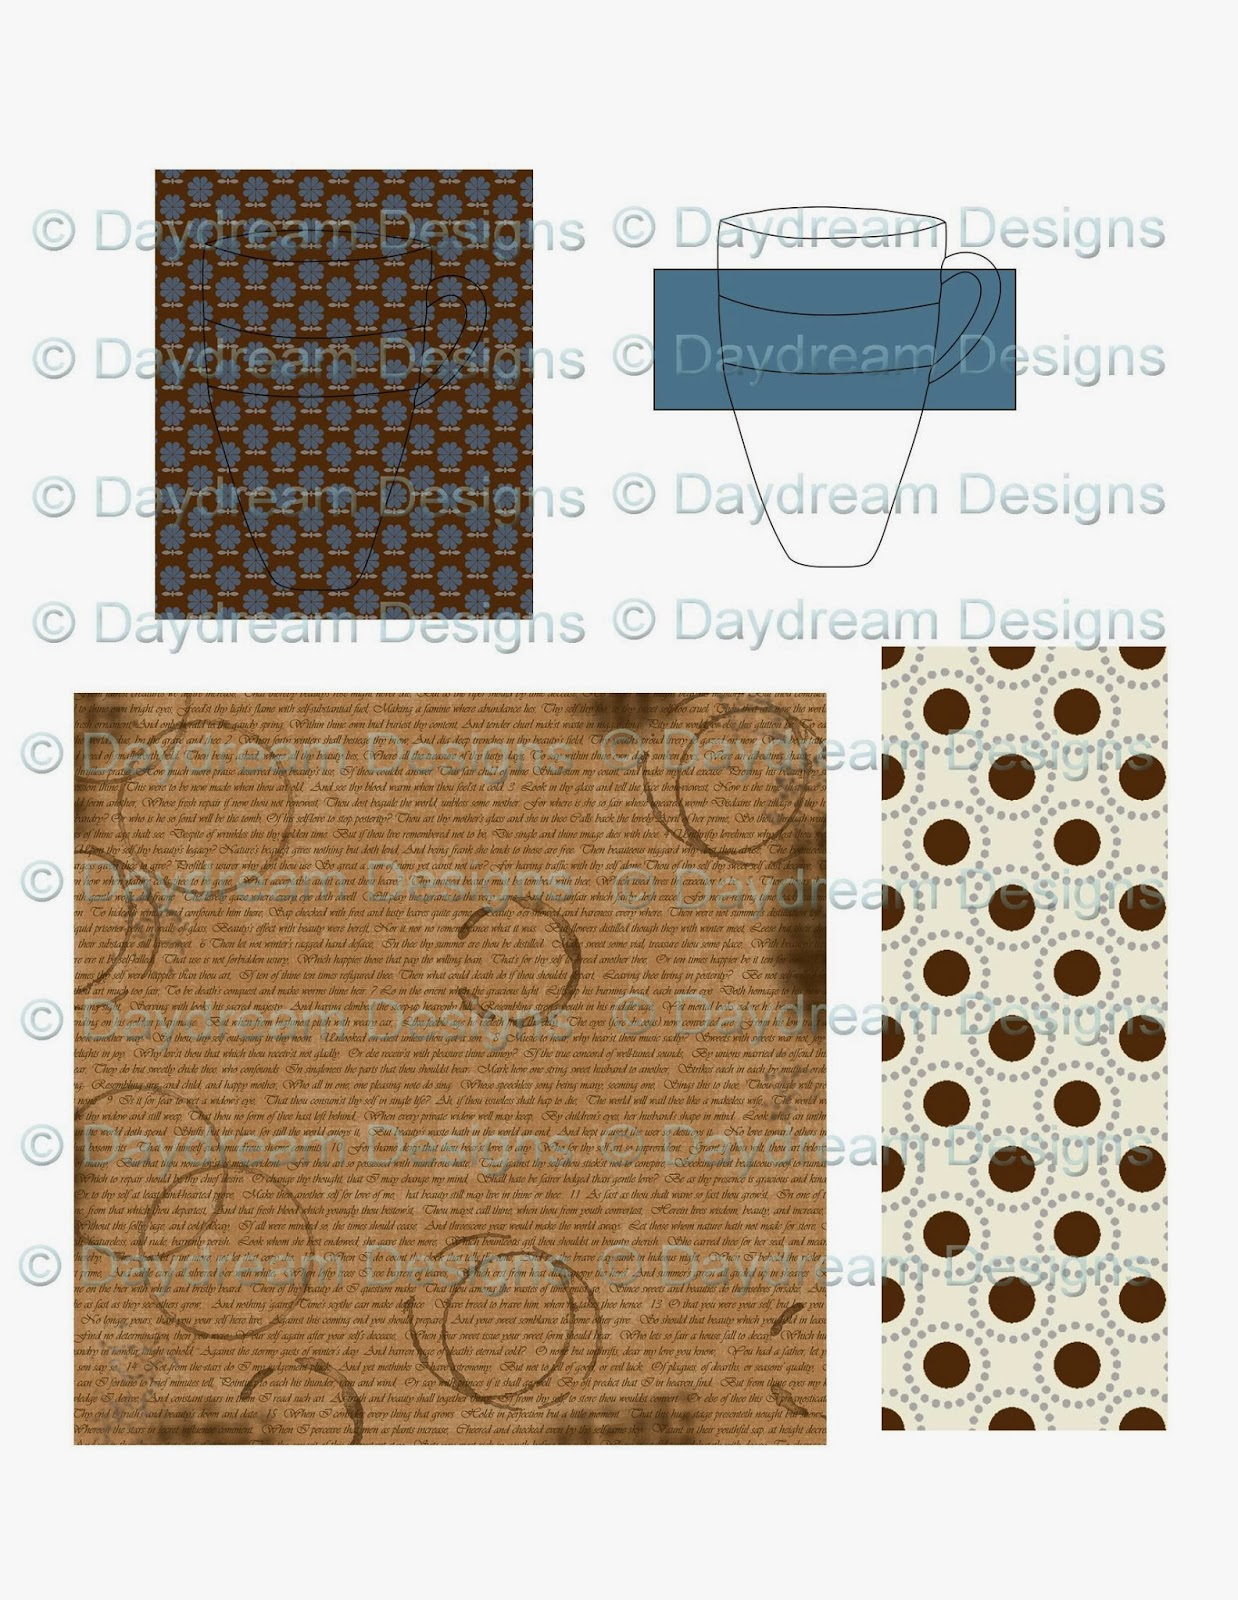 Daydream Designs By Diane Better Latte Than Never Free